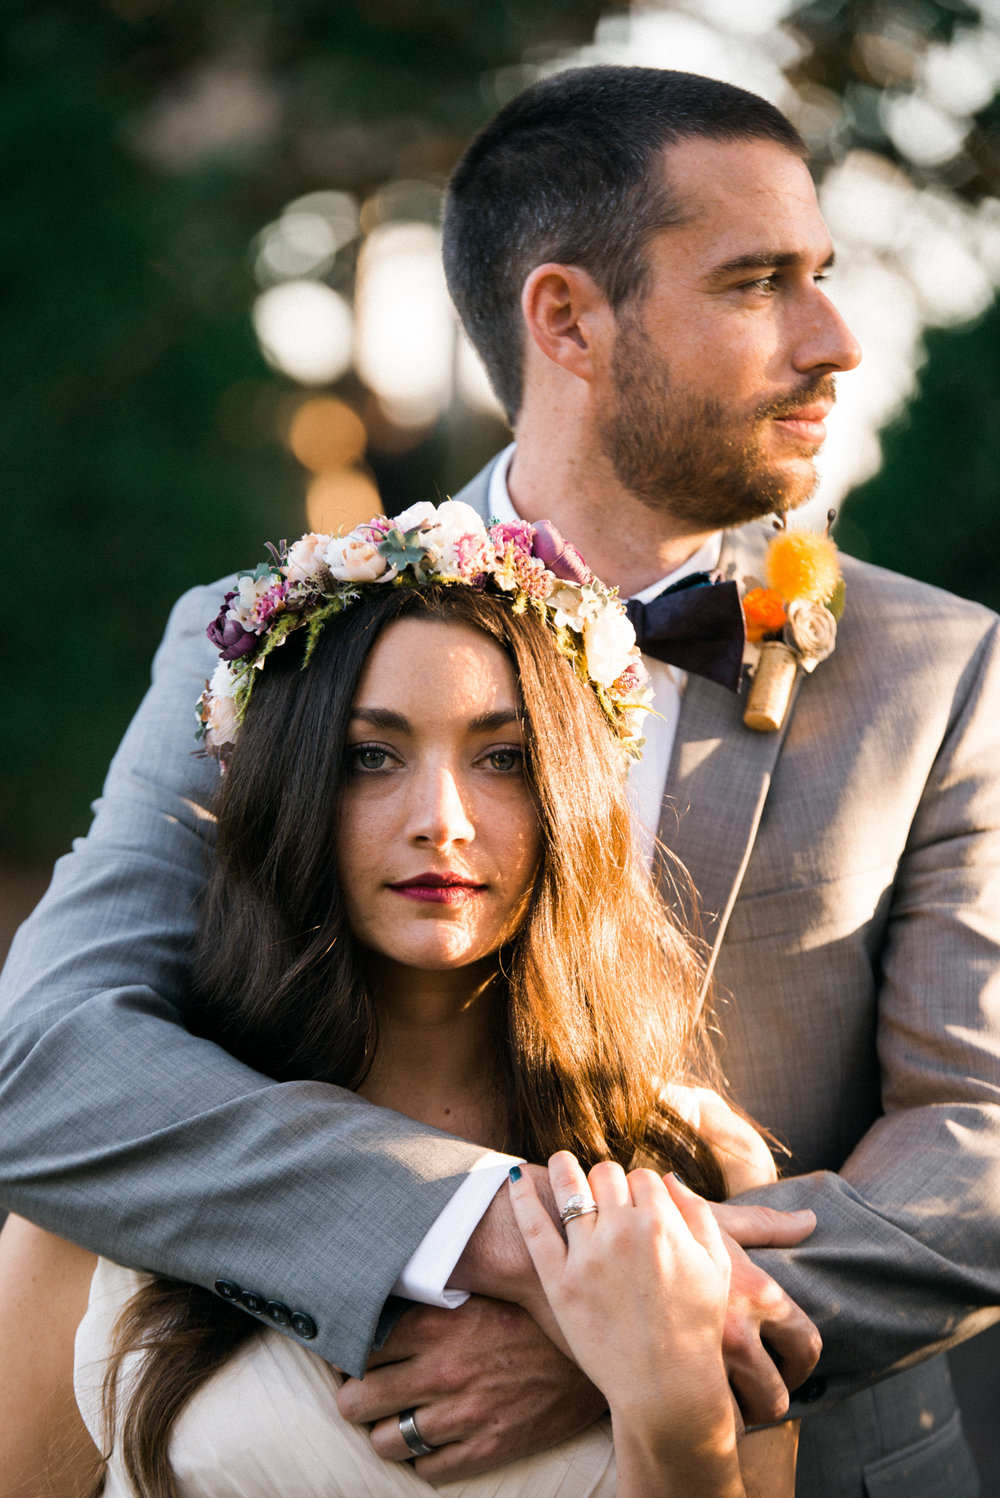 The_Trivium_Estate_Forest_VA_Wedding_Flower_Crown_boho_wedding_classic_wedding_Virginia_Wedding_photographer069.jpg